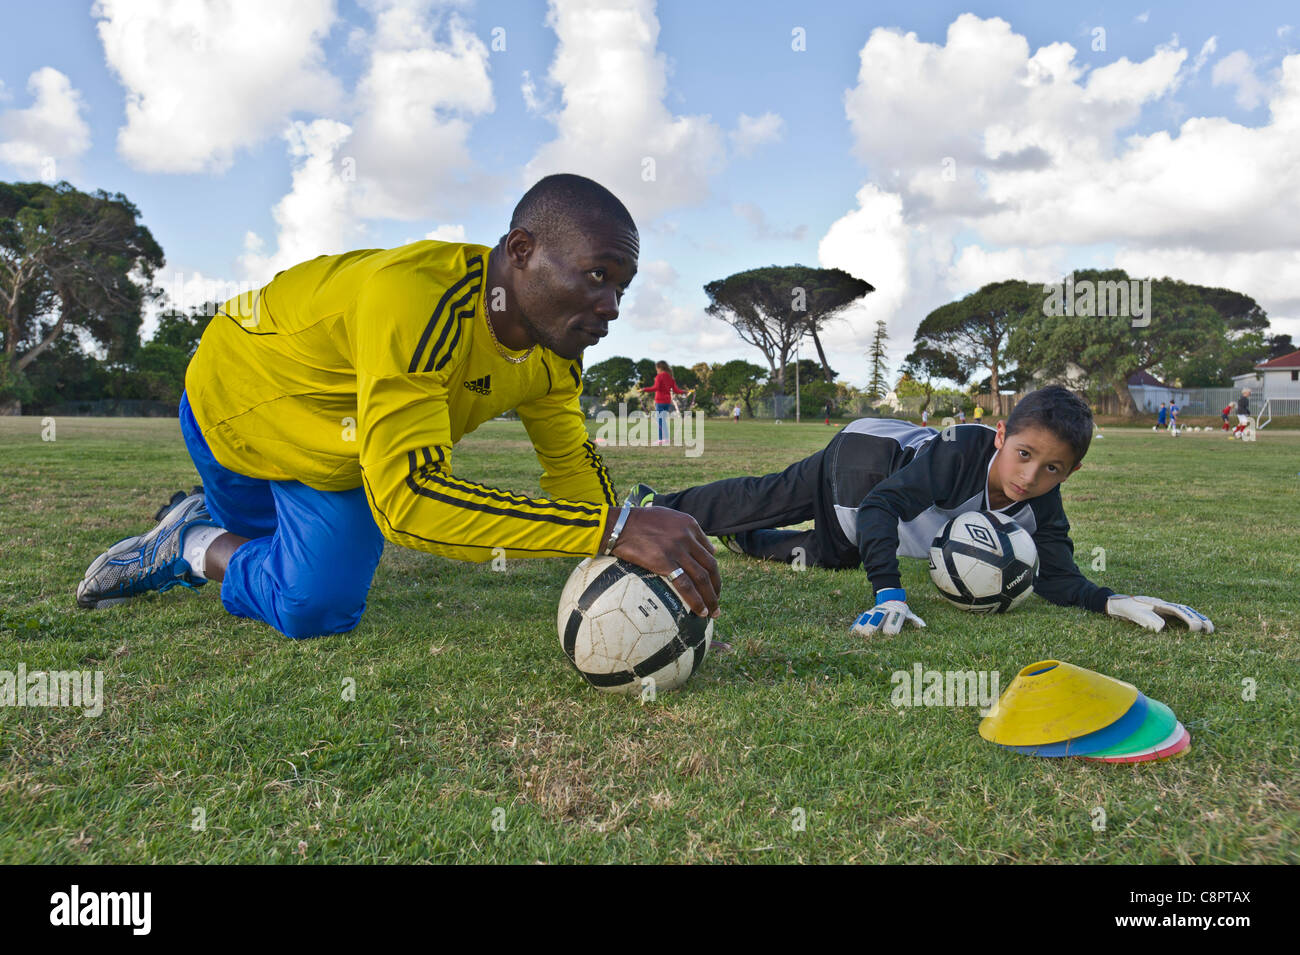 Goal keeper coach instructs junior player Cape Town South Africa - Stock Image